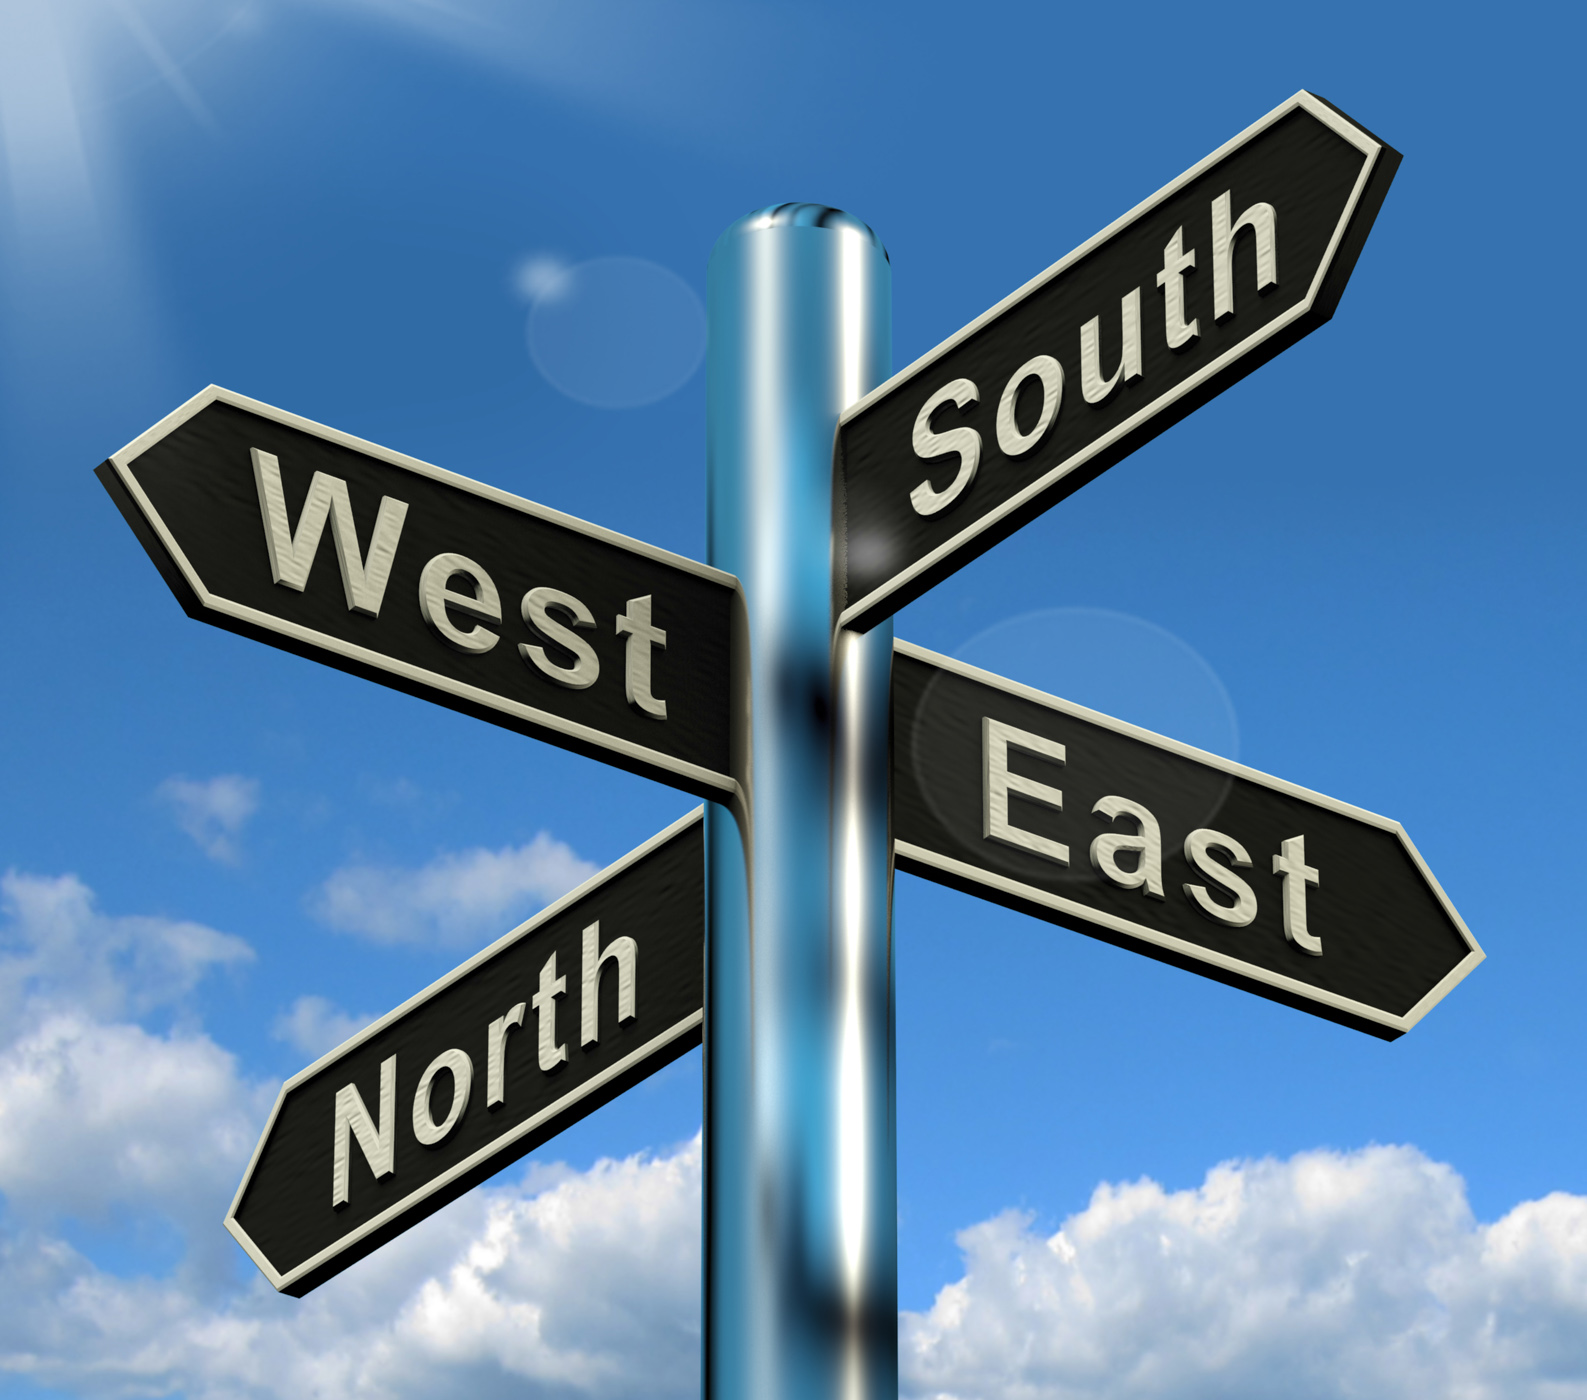 North East South West Signpost Shows Travel Or Direction, Direction, North, Traveling, Travel, HQ Photo